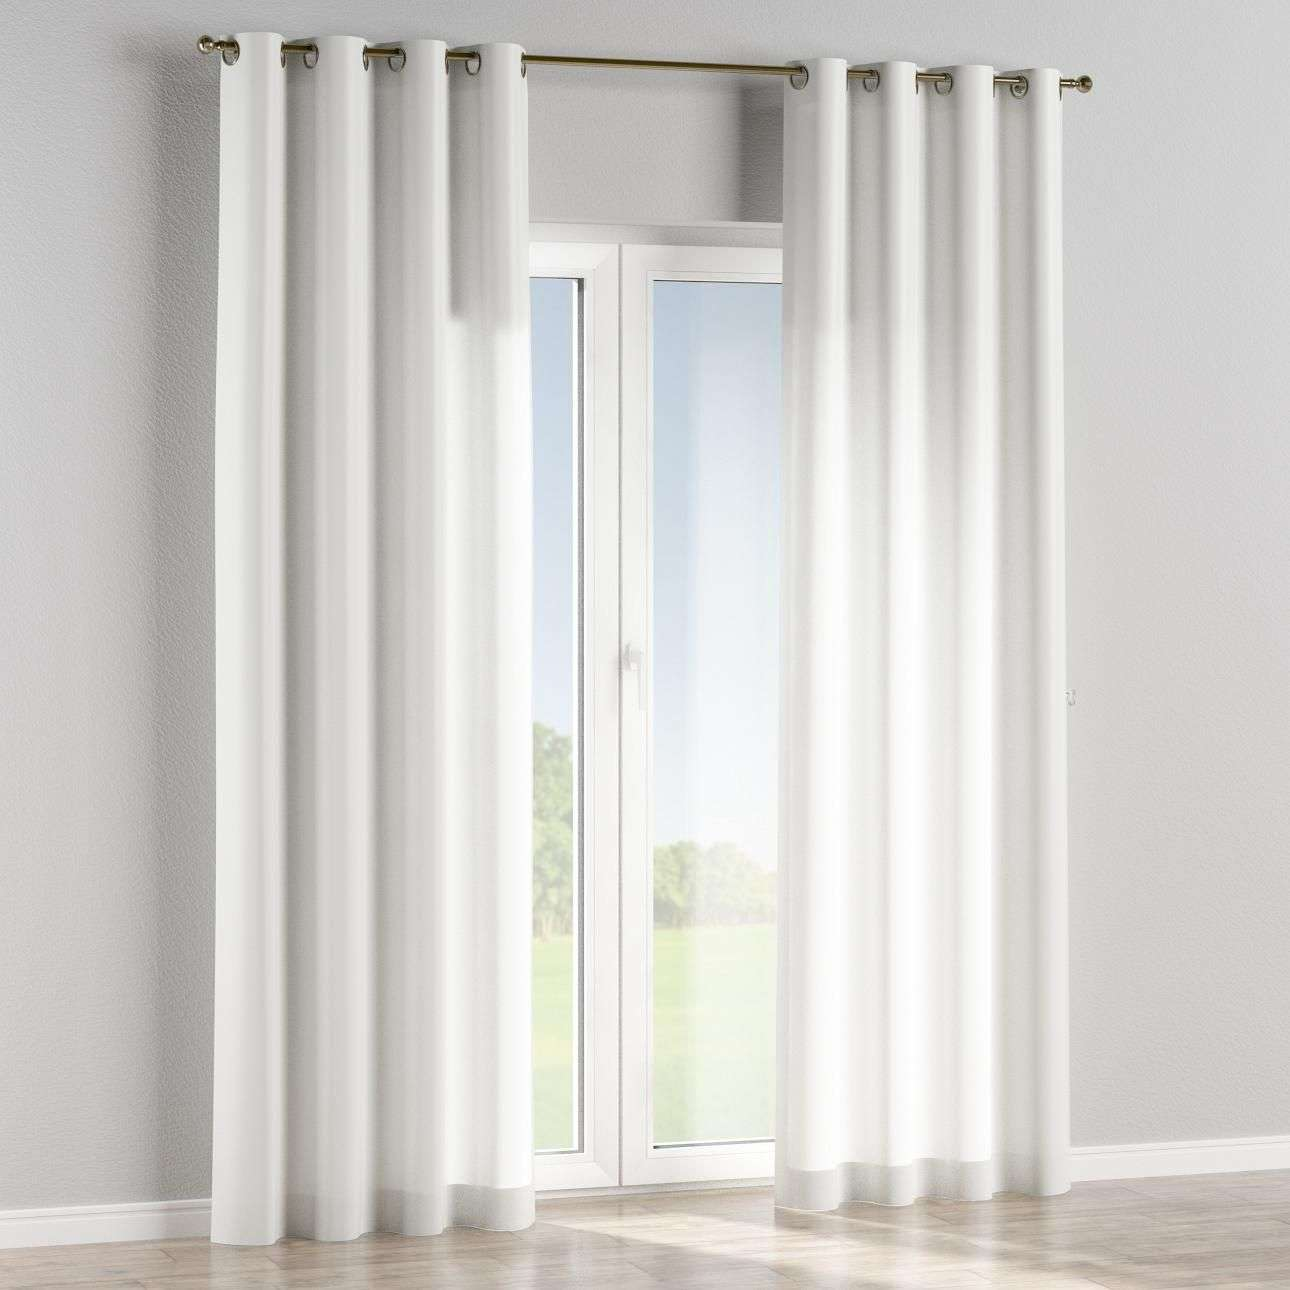 Eyelet curtains in collection Norge, fabric: 140-78